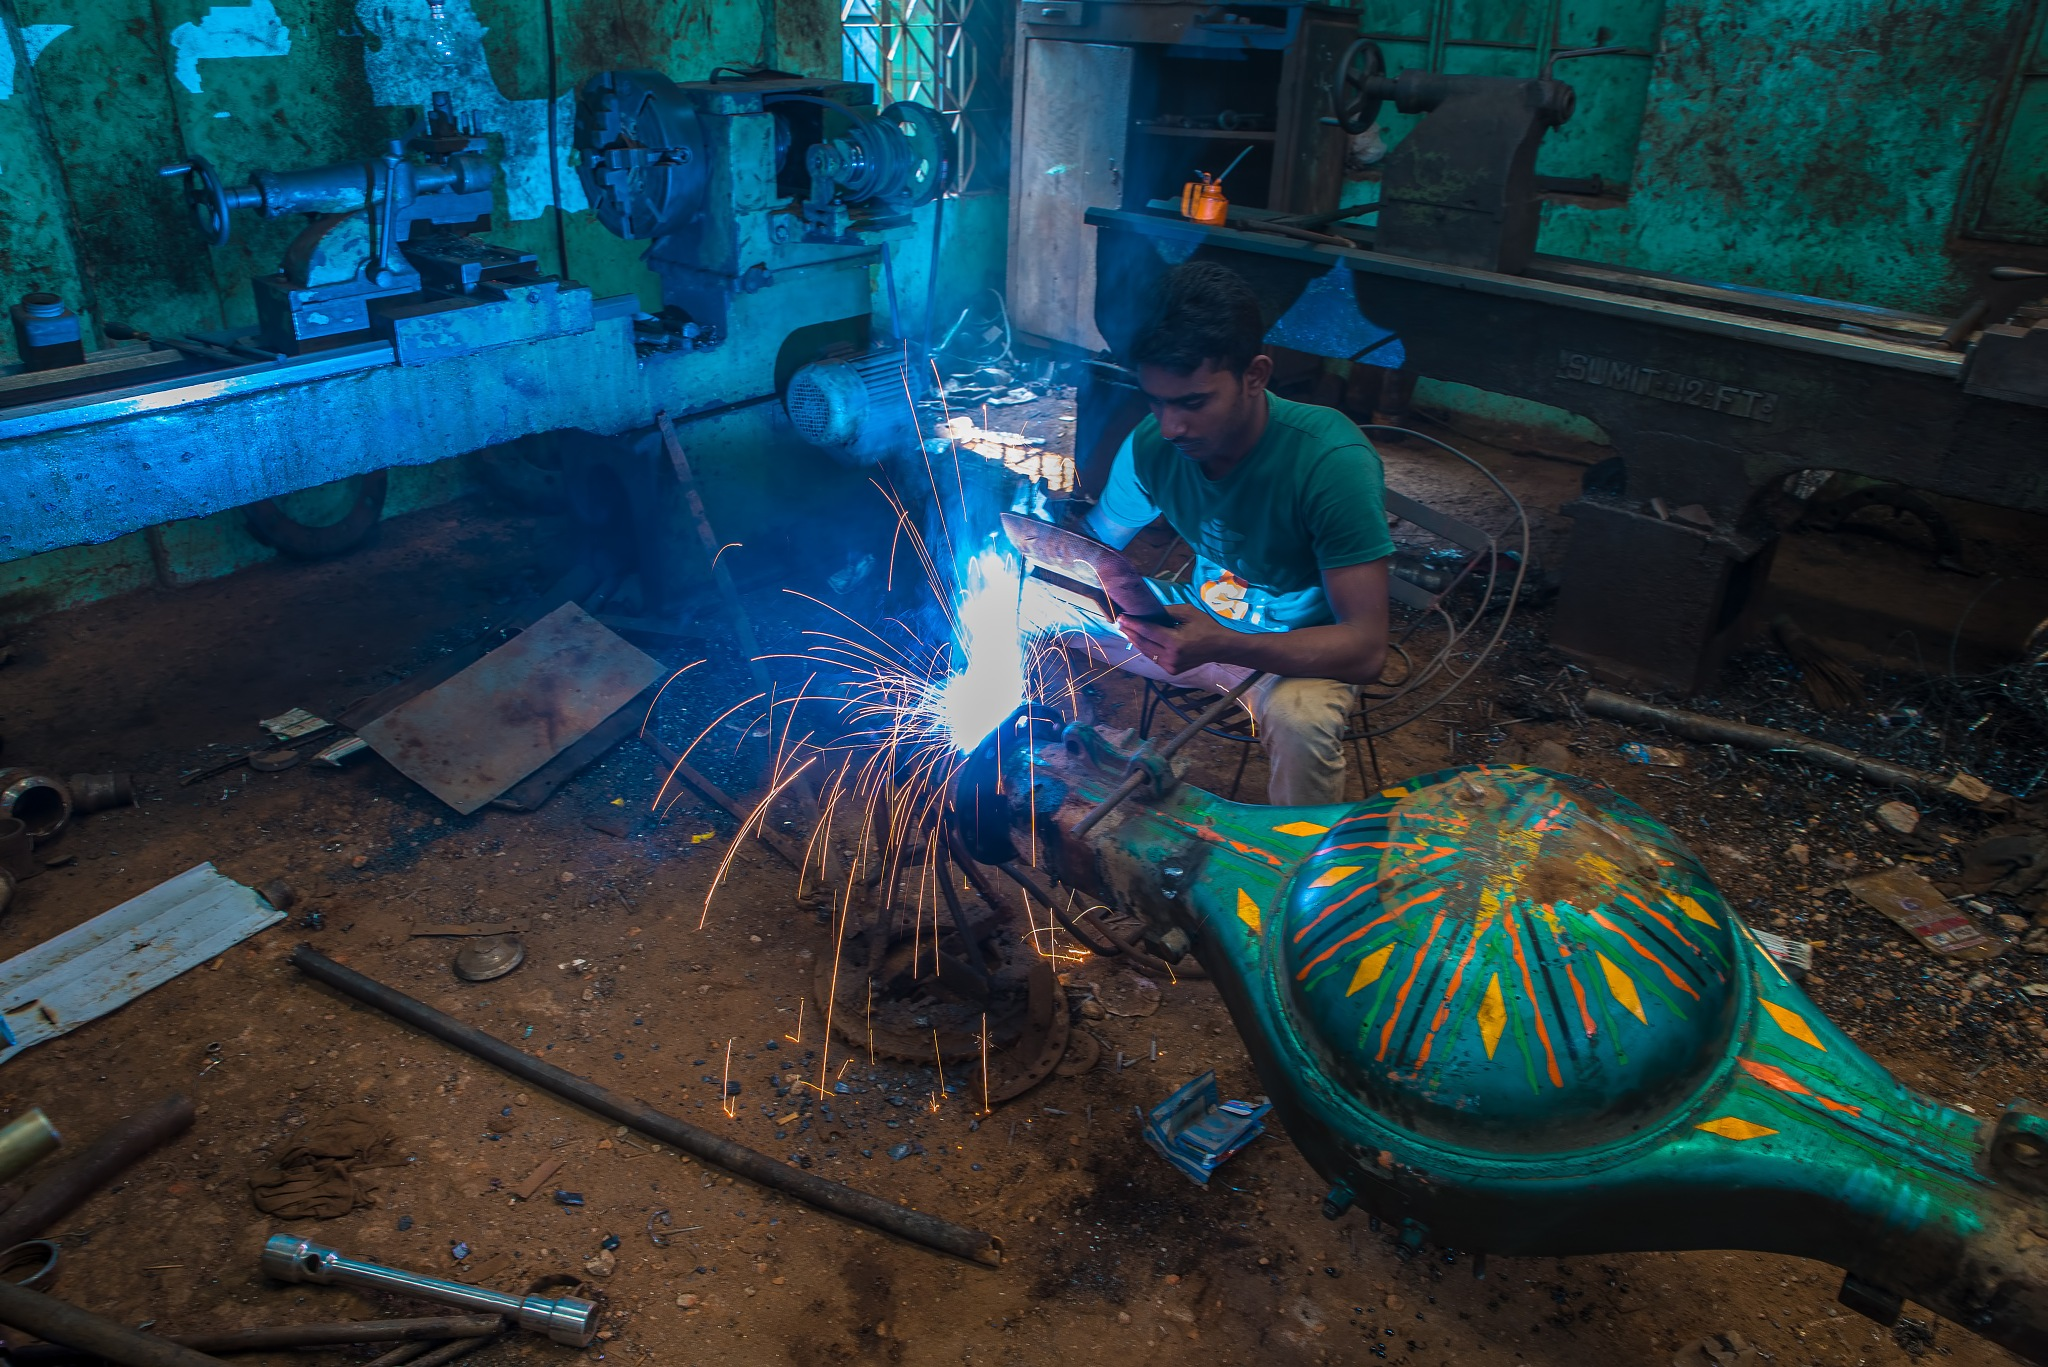 Working Life by Md Golam Murshed